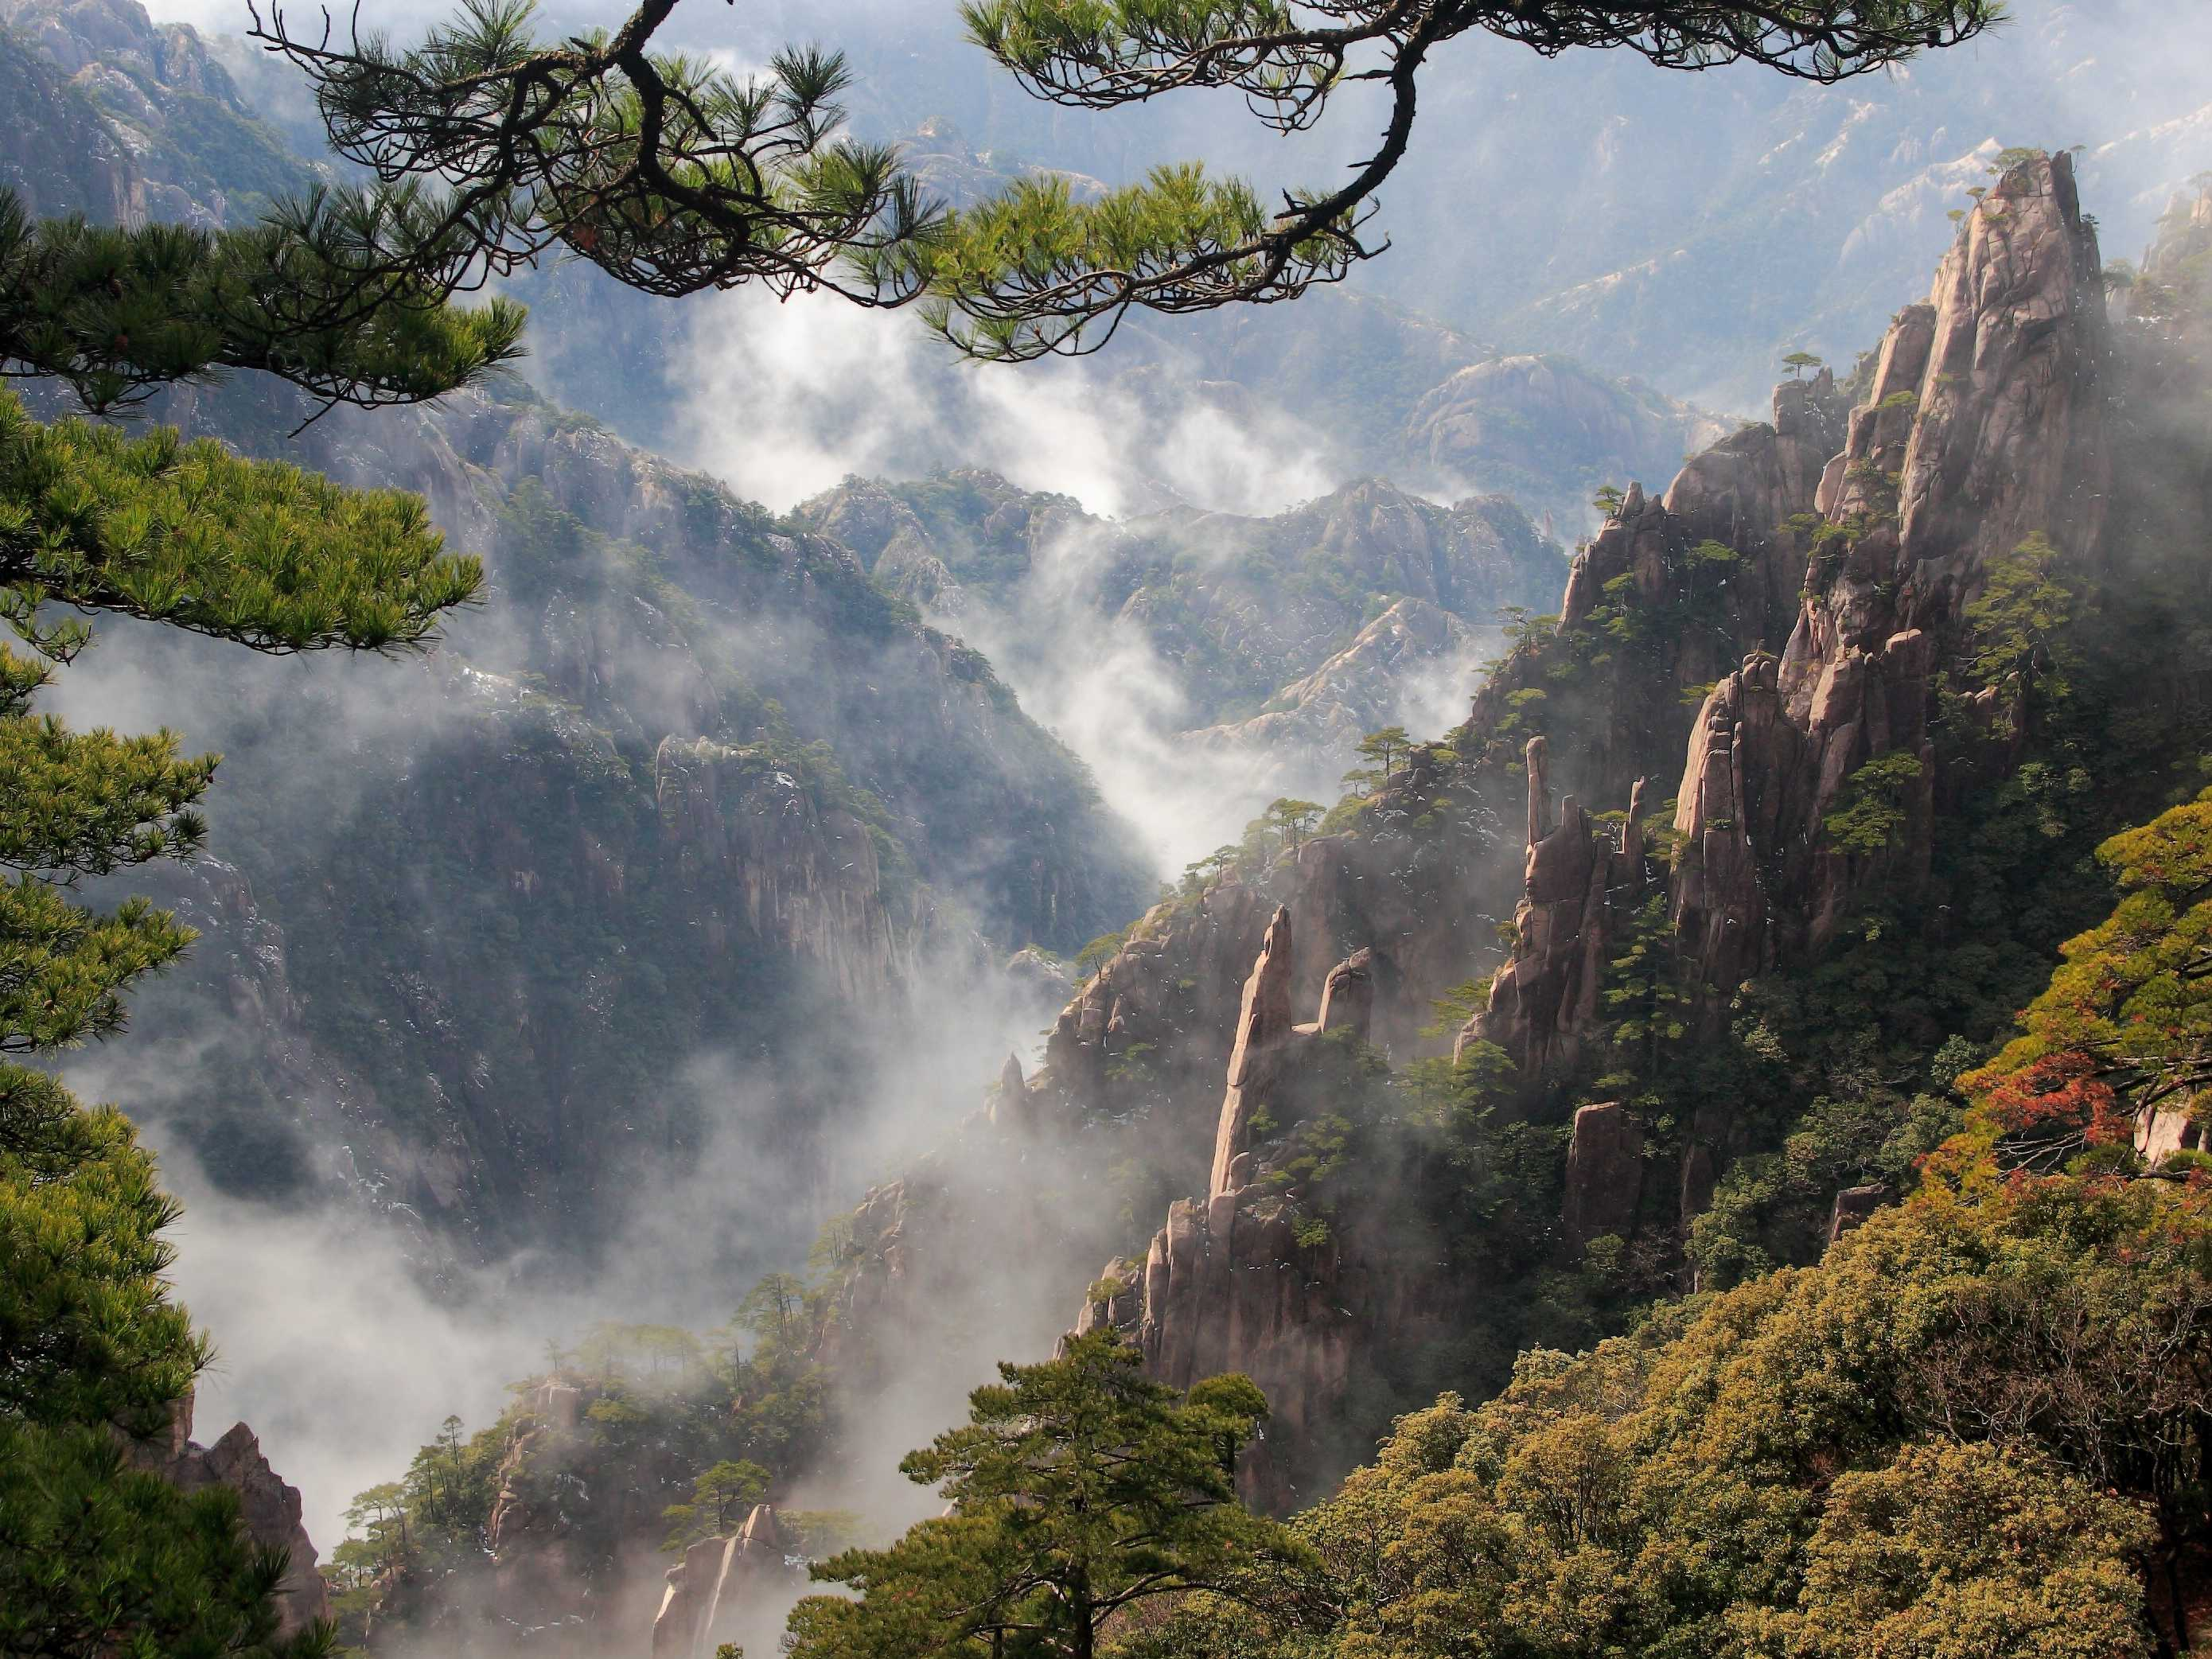 Step into the dreamy landscape of China's Huangshan Mountain.